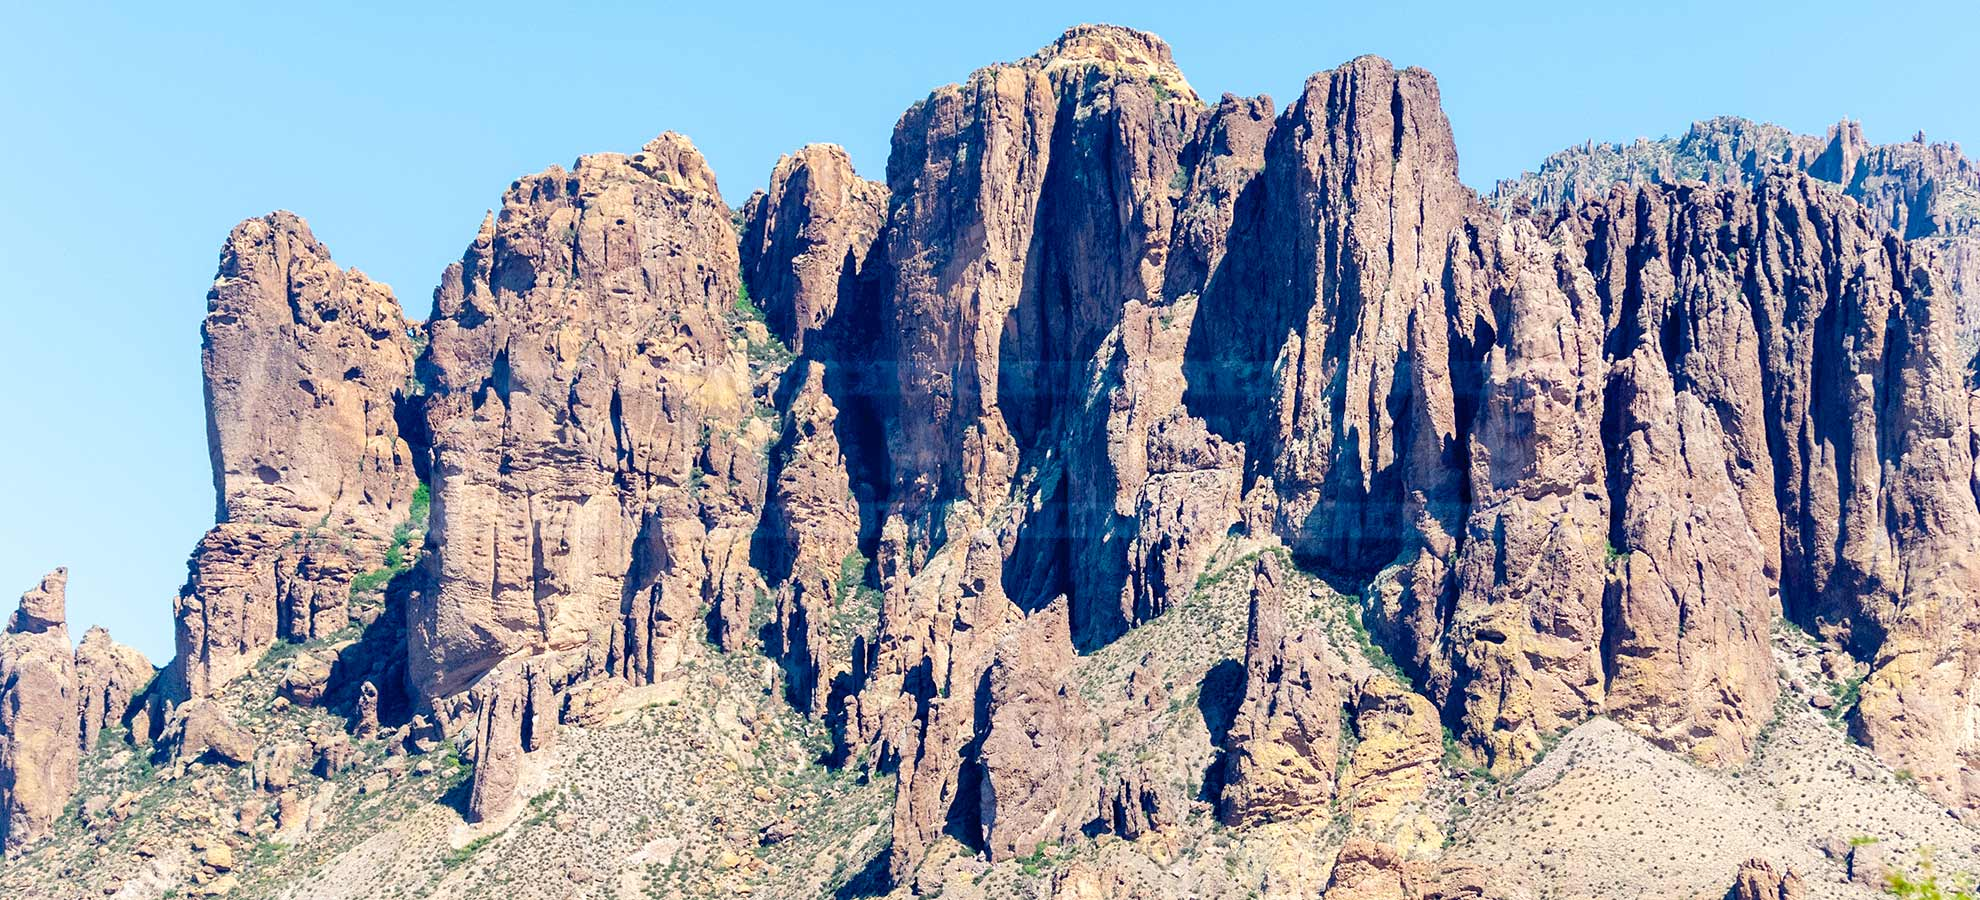 Superstition mountains rocky ridge